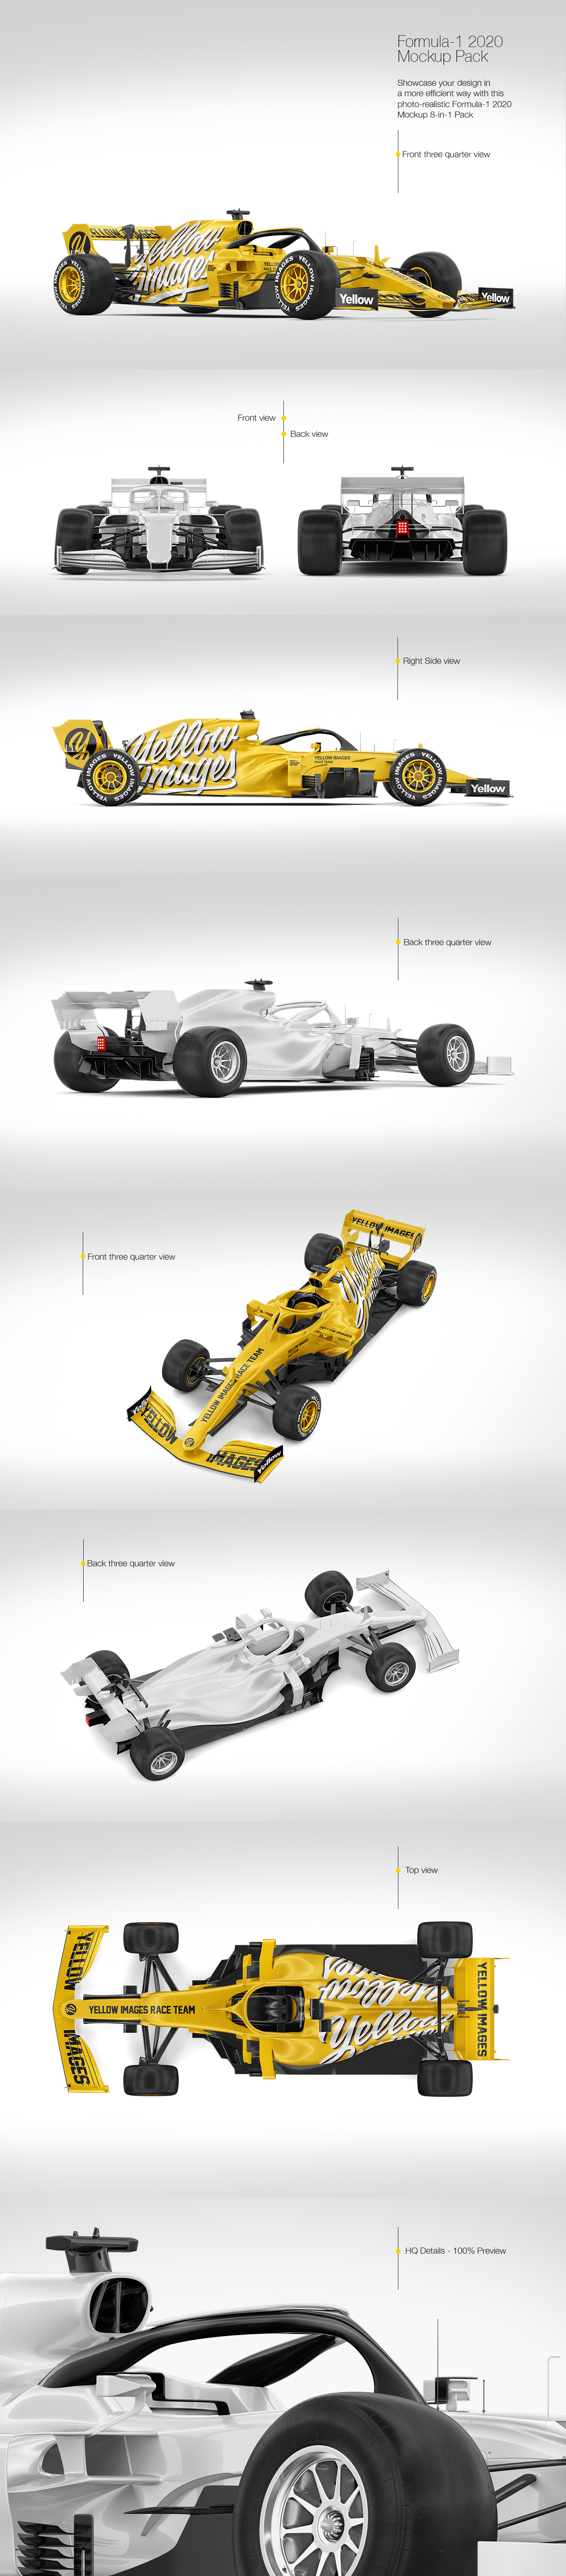 Download F1 Car Mockup Free Download Free And Premium Psd Mockup Templates And Design Assets Yellowimages Mockups